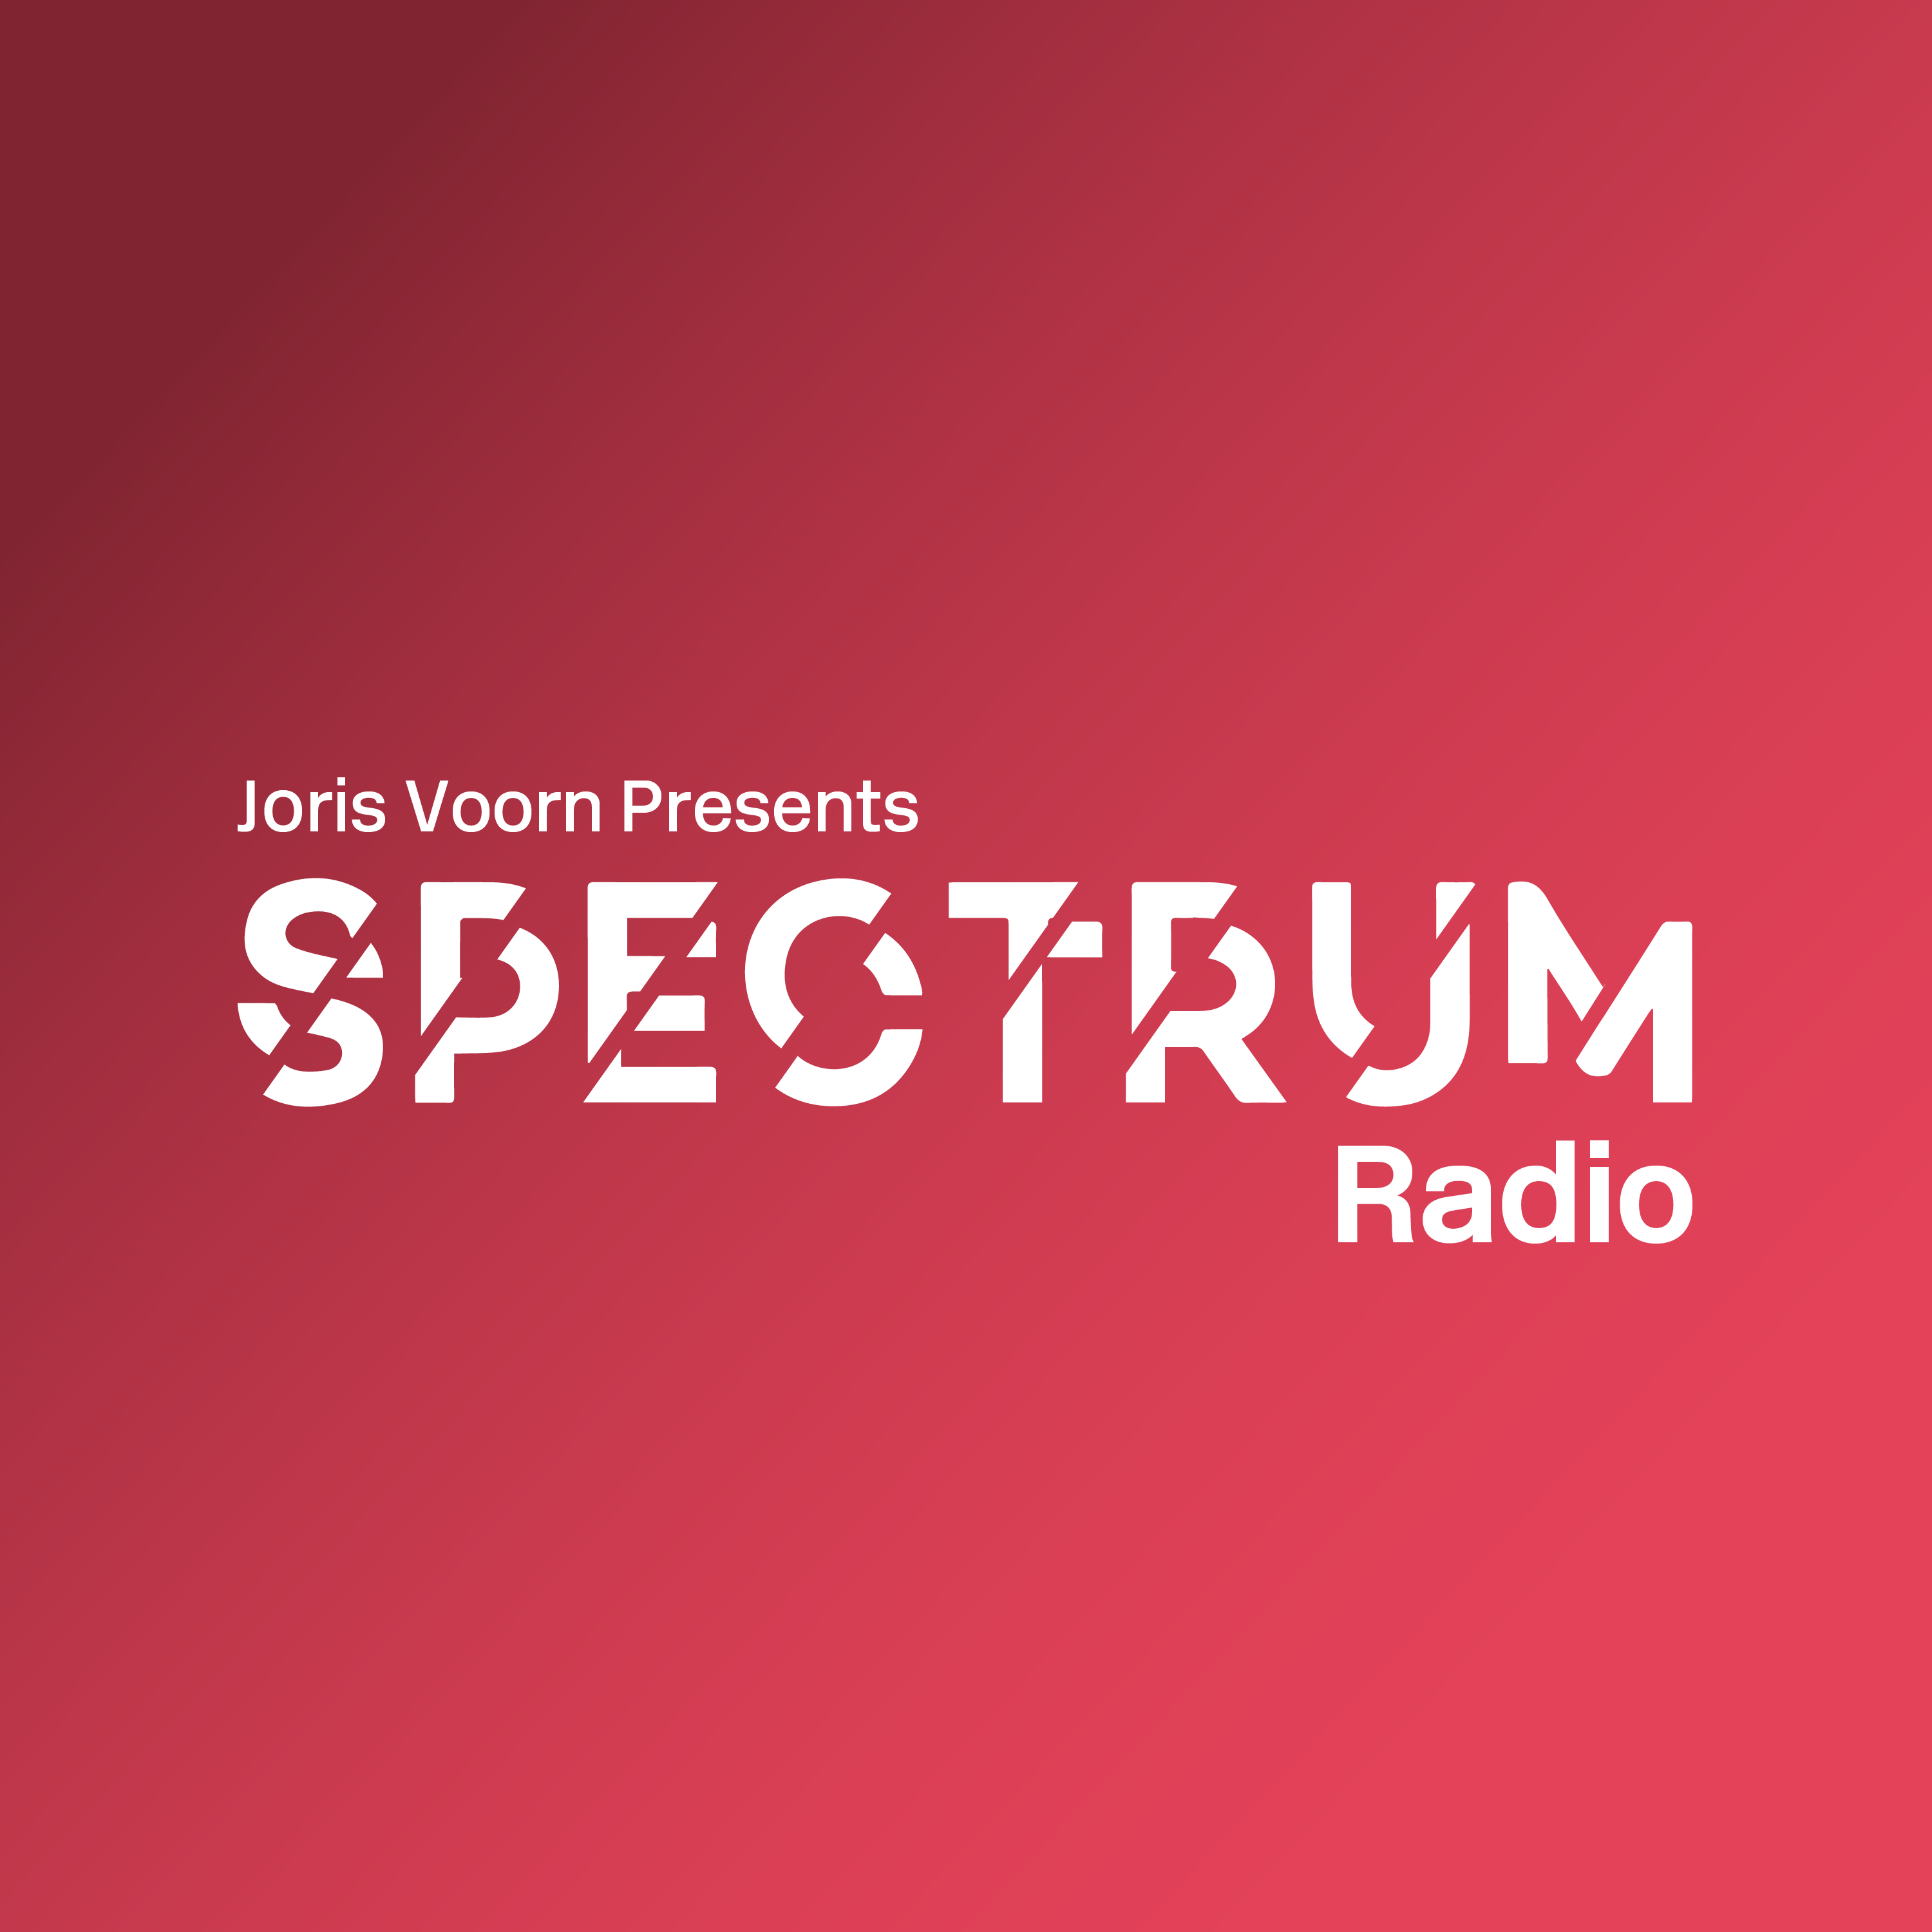 Delta Podcasts - Spectrum Radio by Joris Voorn (02.11.2017)